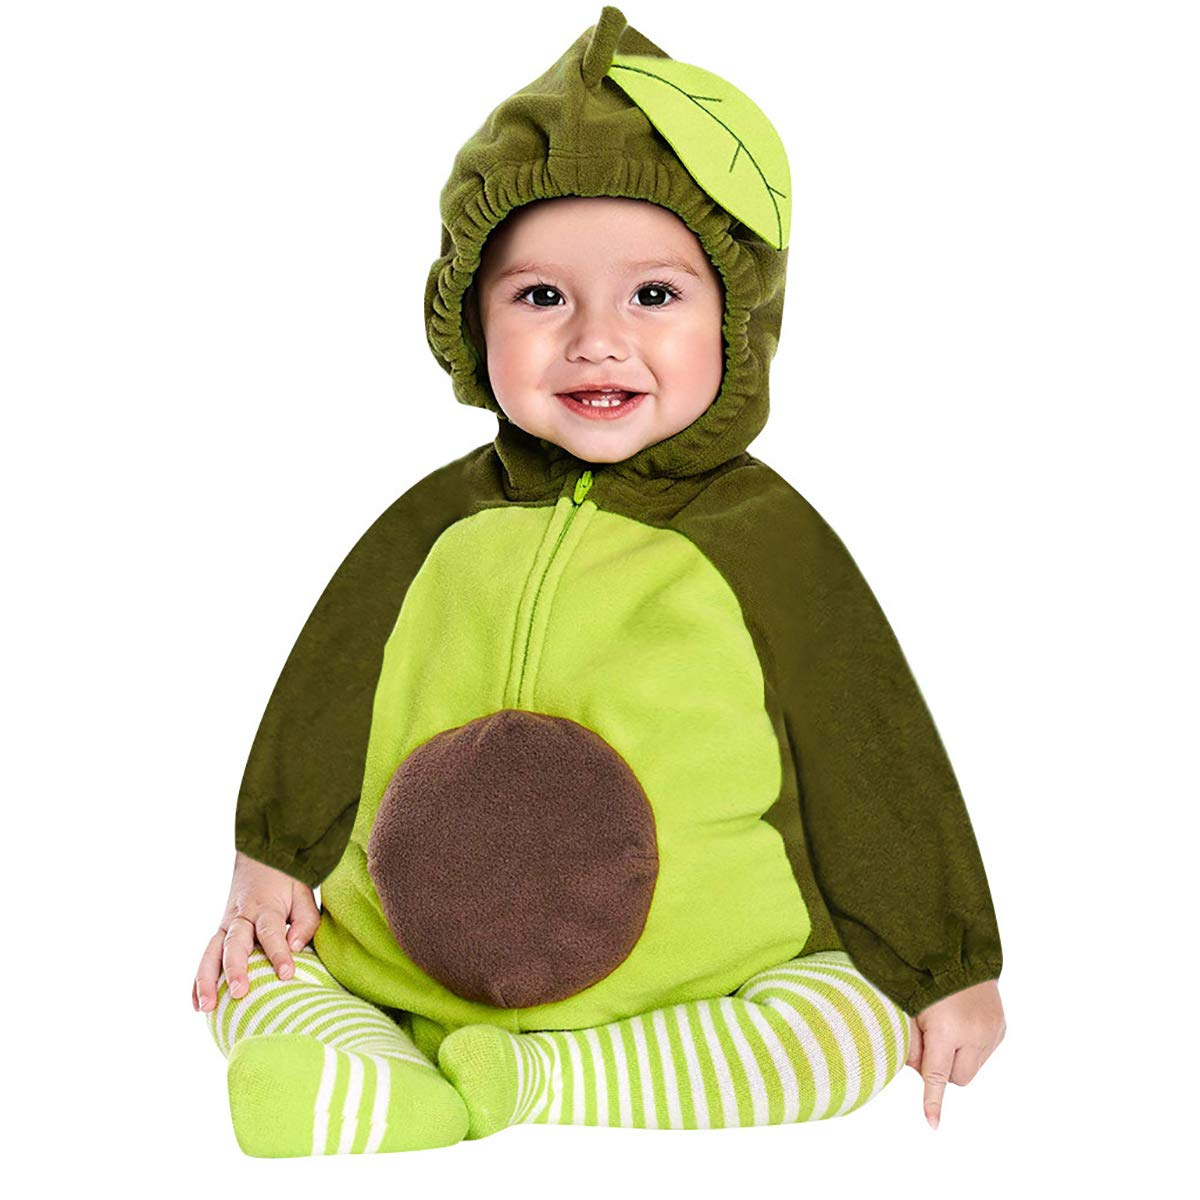 Verve Jelly Toddler Infant Boys Girls Halloween Costume Long Sleeve Hooded Romper Cosplay Party Clothes Jumpsuit Outfits